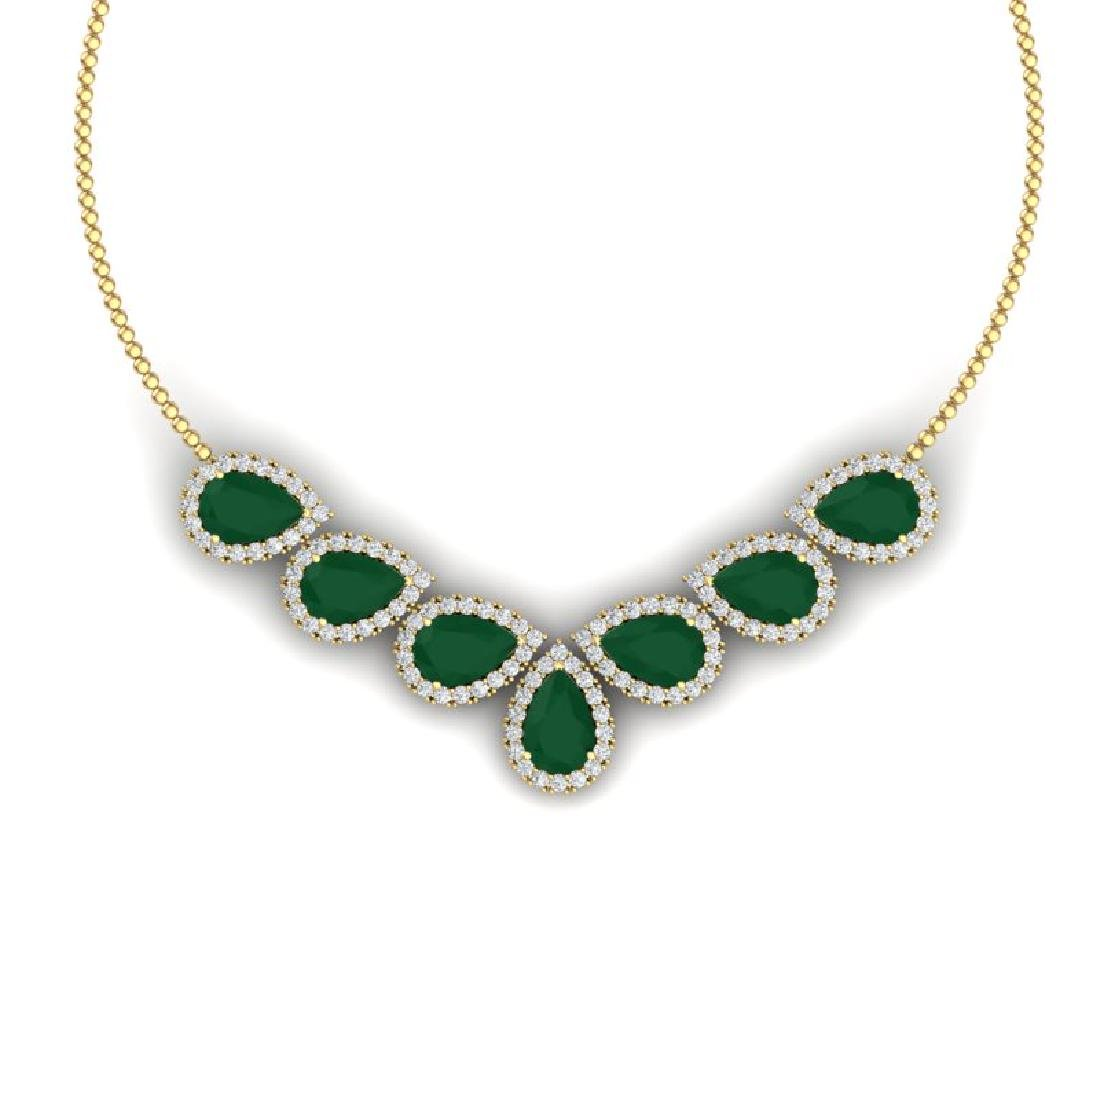 34.72 CTW Royalty Emerald & VS Diamond Necklace 18K